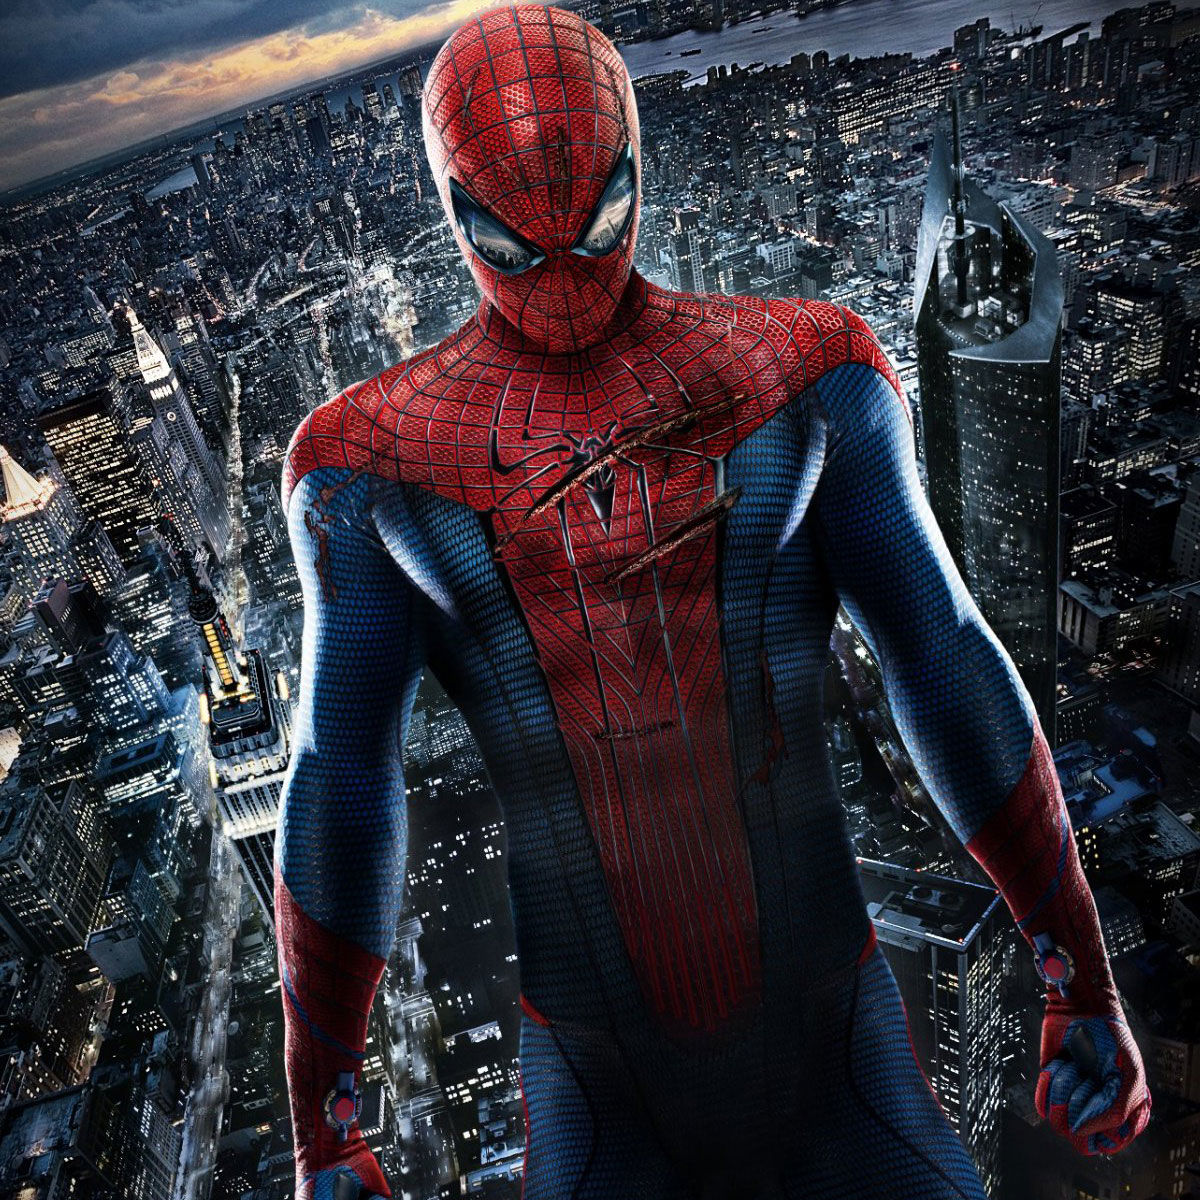 spiderman-is-this-the-first-marvel-movie-spider-man-will-star-in.jpeg